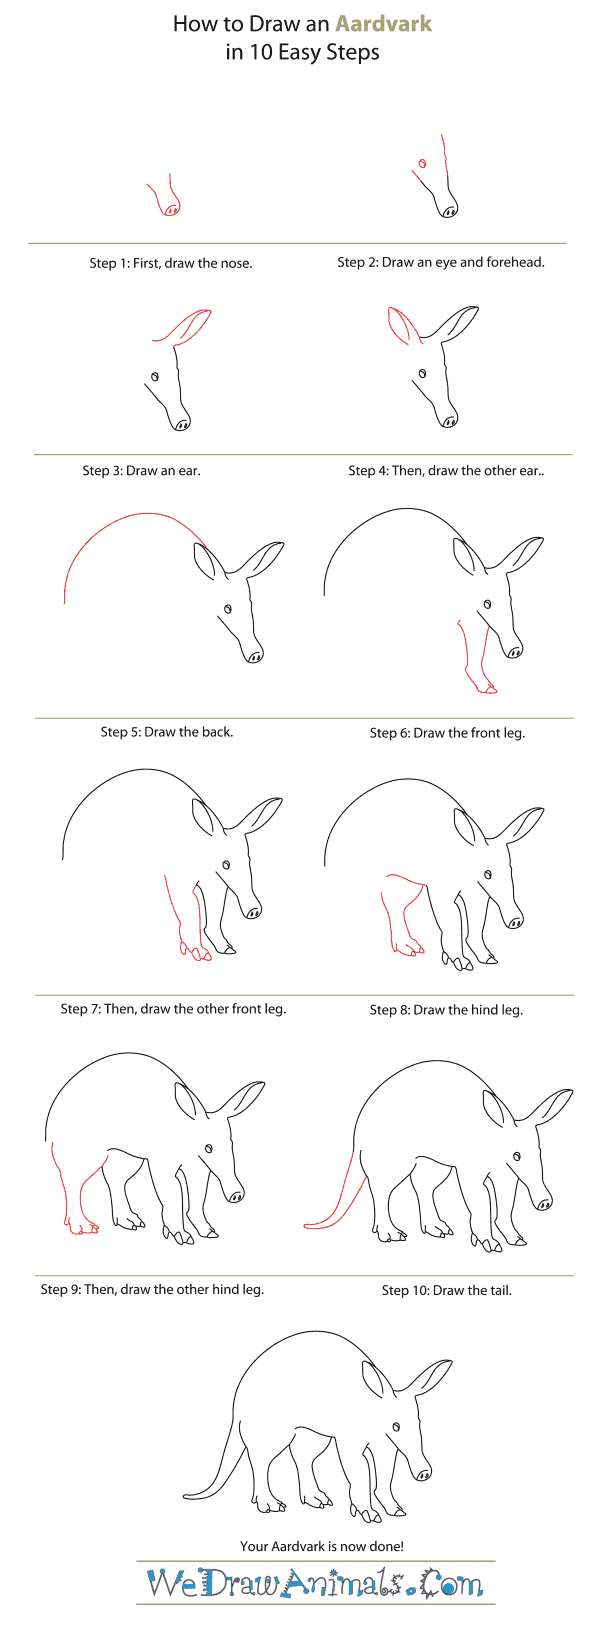 How to Draw an Aardvark - Step-By-Step Tutorial